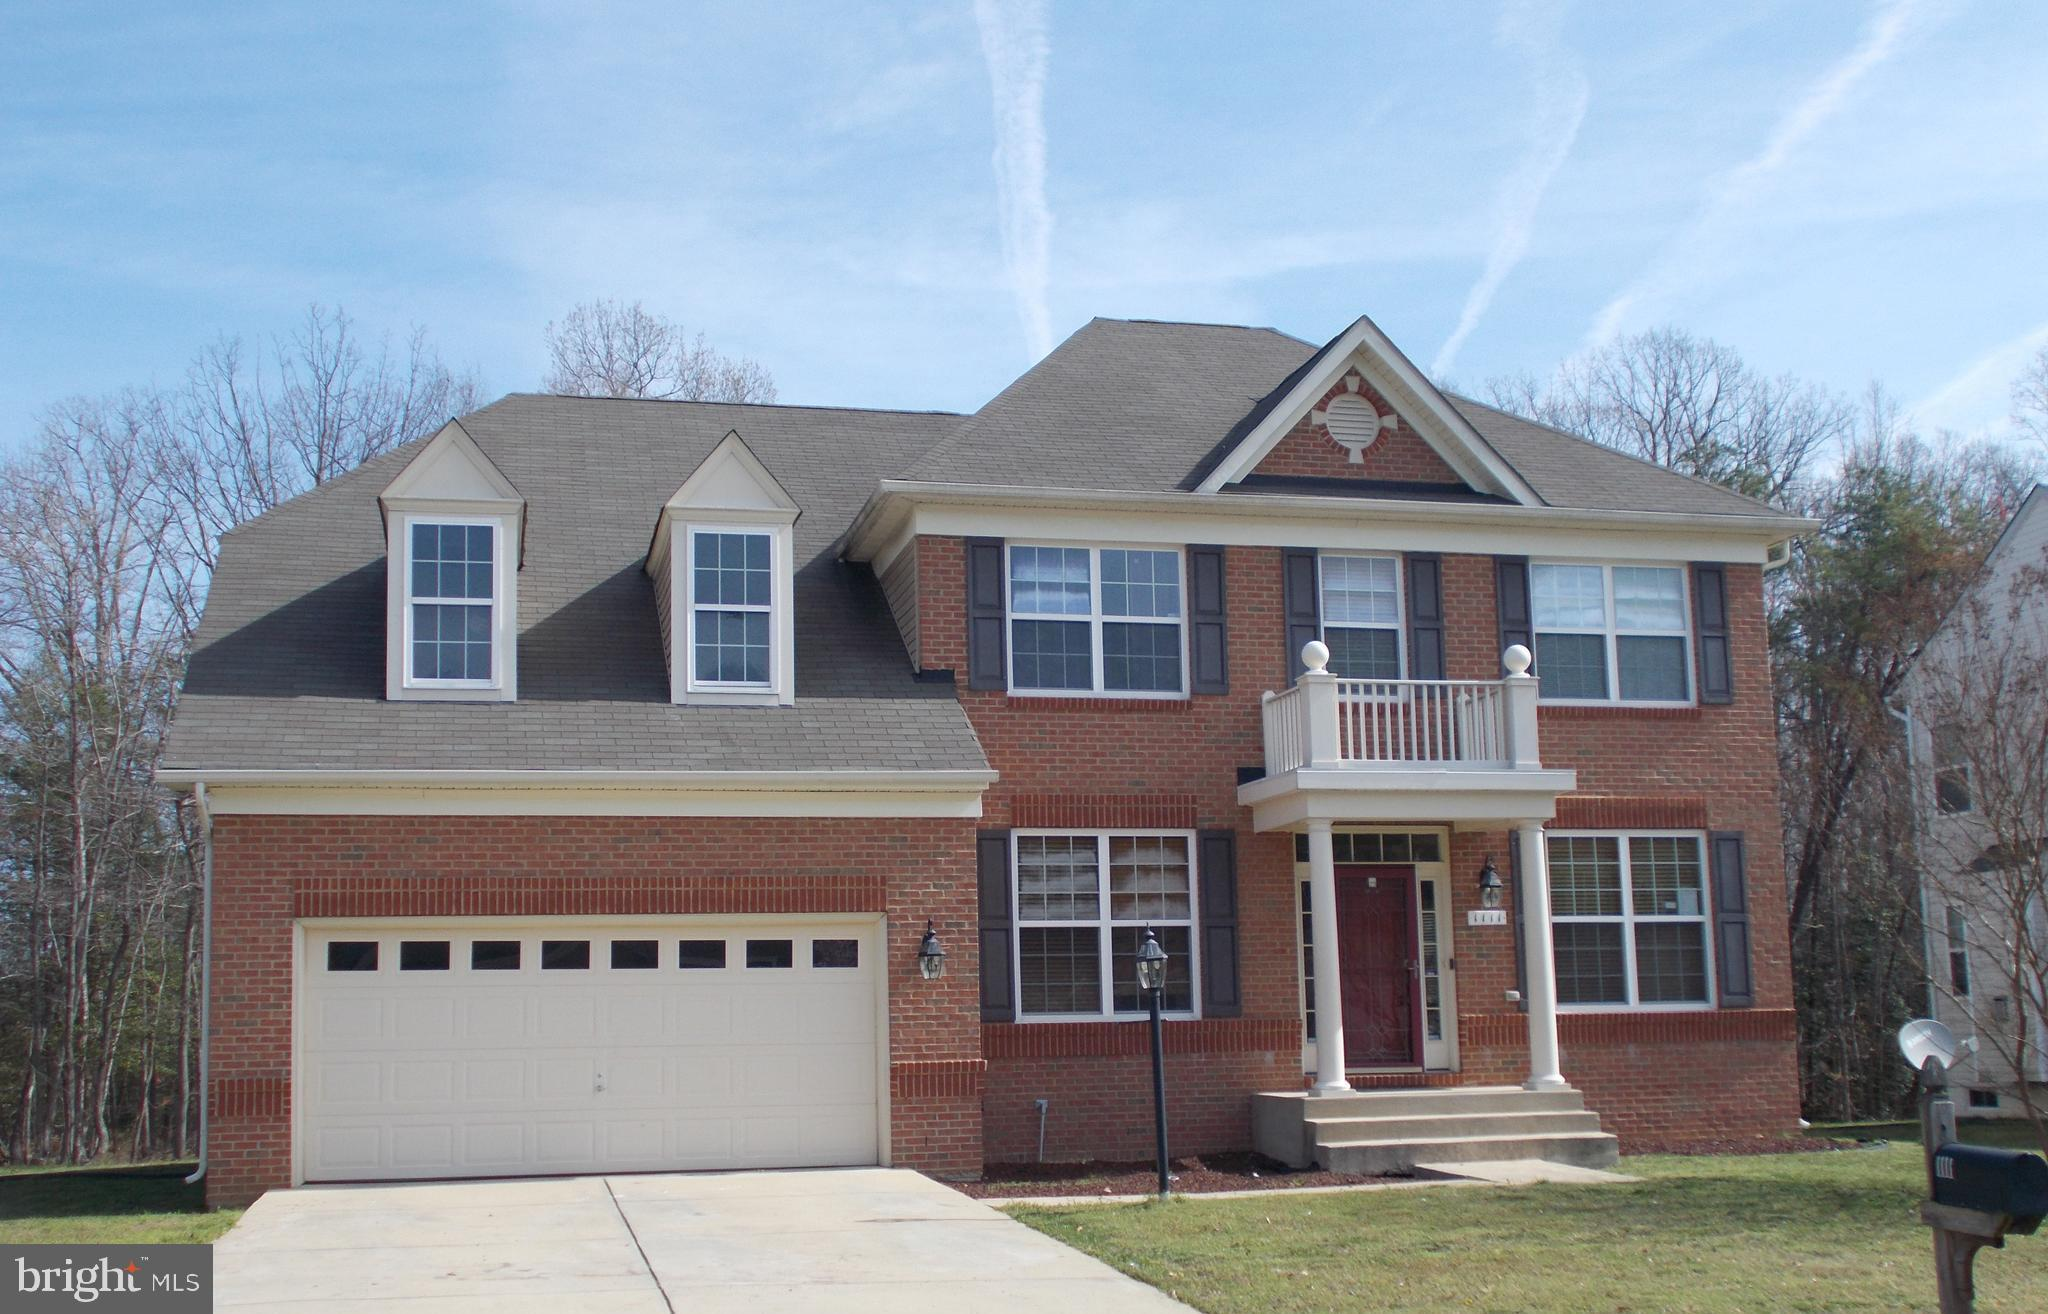 Welcome to this 4 bedroom, 2.5 bath colonial in the Summerwood community of Accokeek. A two story fo